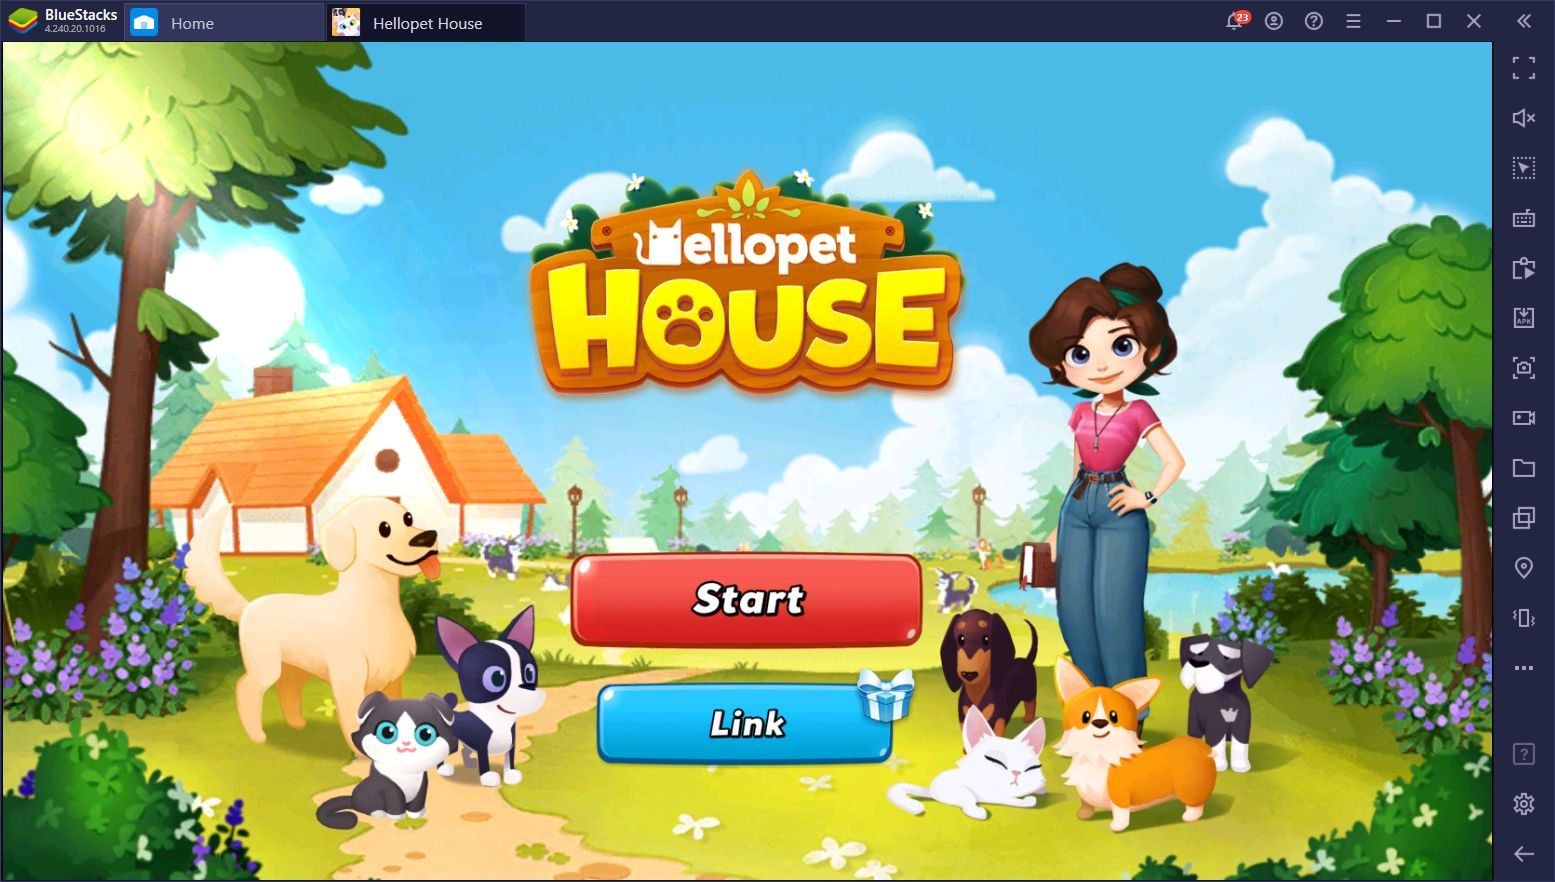 Hellopet House – How to Play This Casual, Lighthearted Mobile Game on PC With BlueStacks